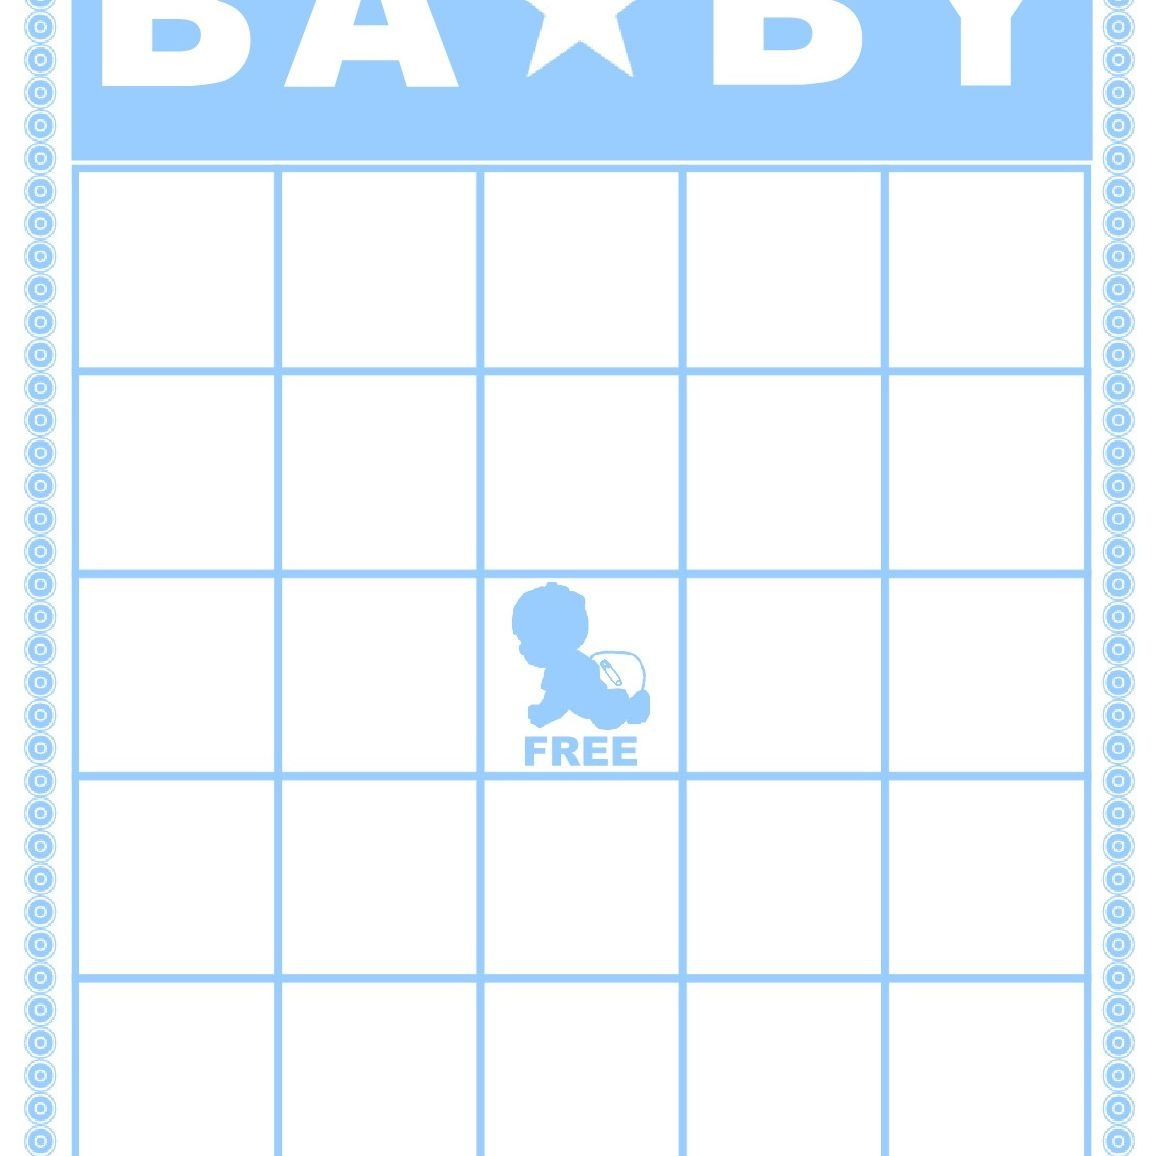 Free Baby Shower Bingo Cards Your Guests Will Love - Free Printable Baby Shower Bingo